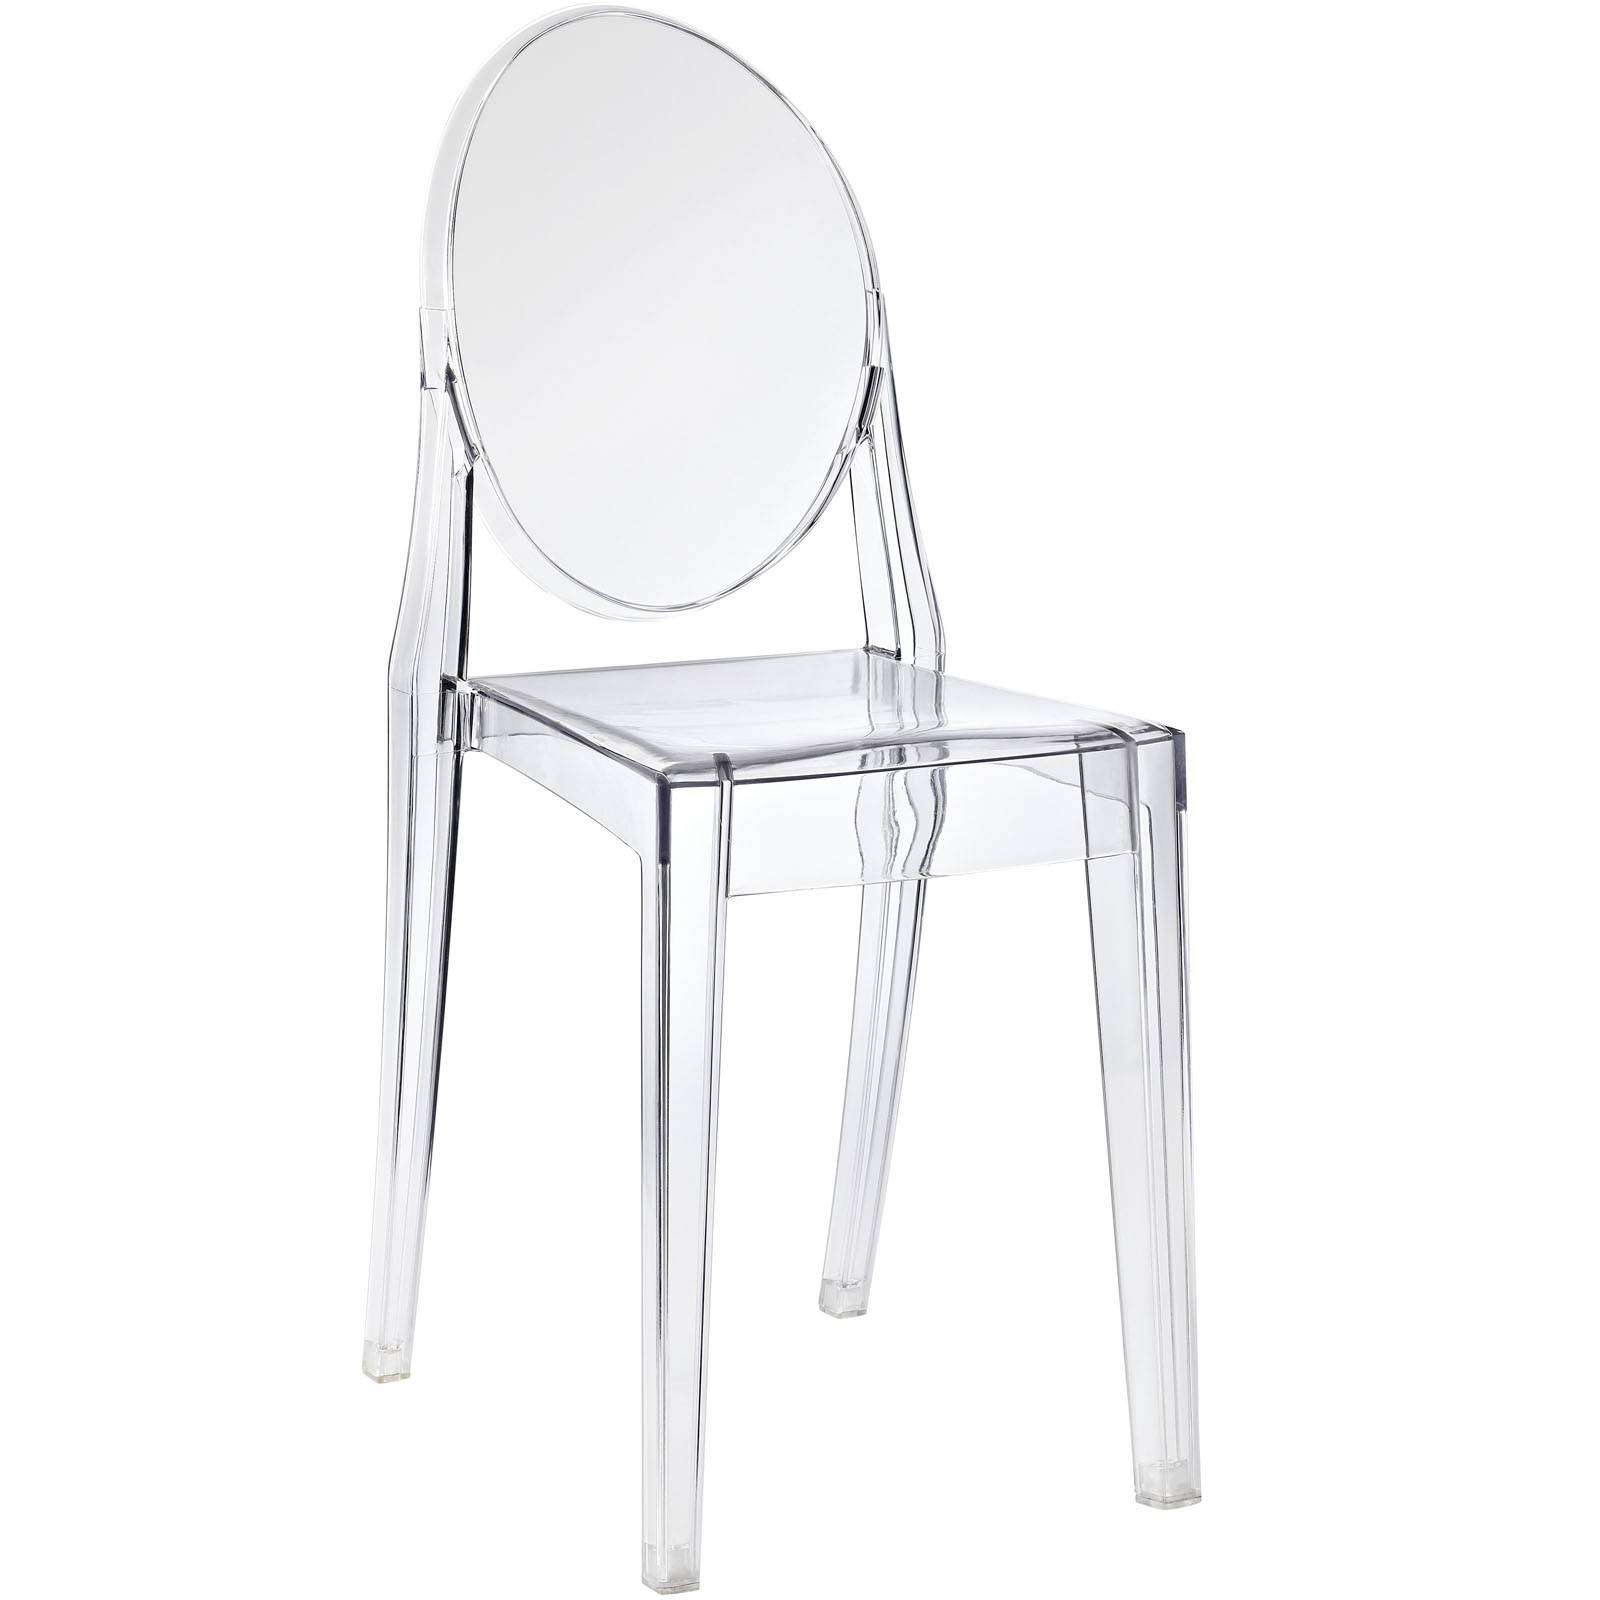 philippe starck ghost chair banqueting covers for sale uk style victoria side